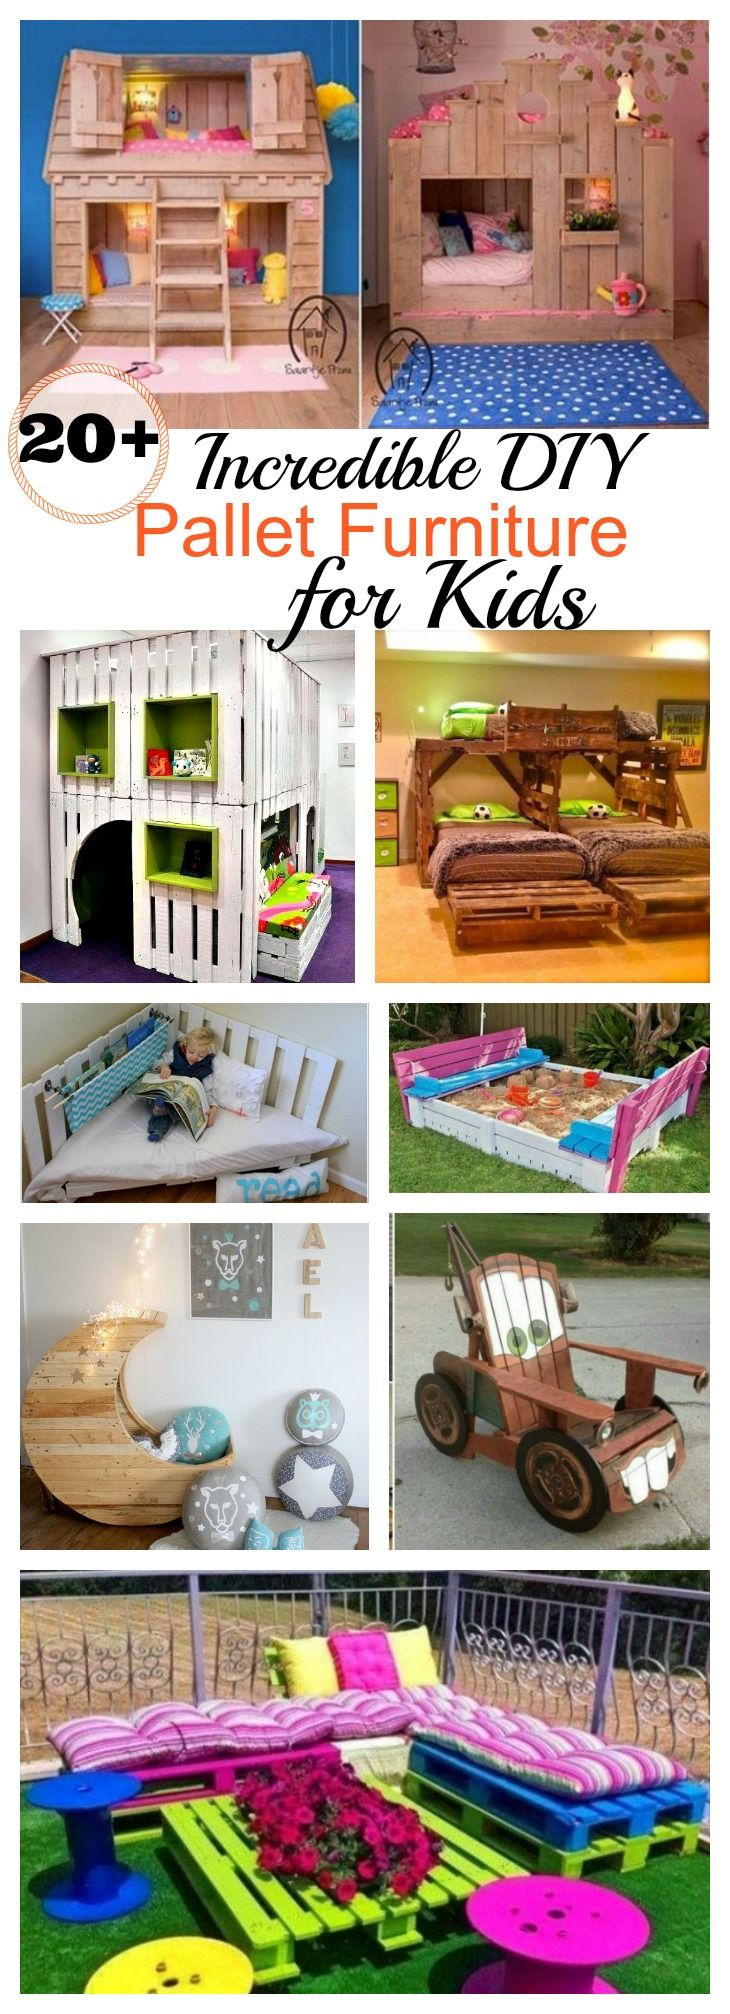 20 Incredible Diy Pallet Furniture For Kids Diy Pallet